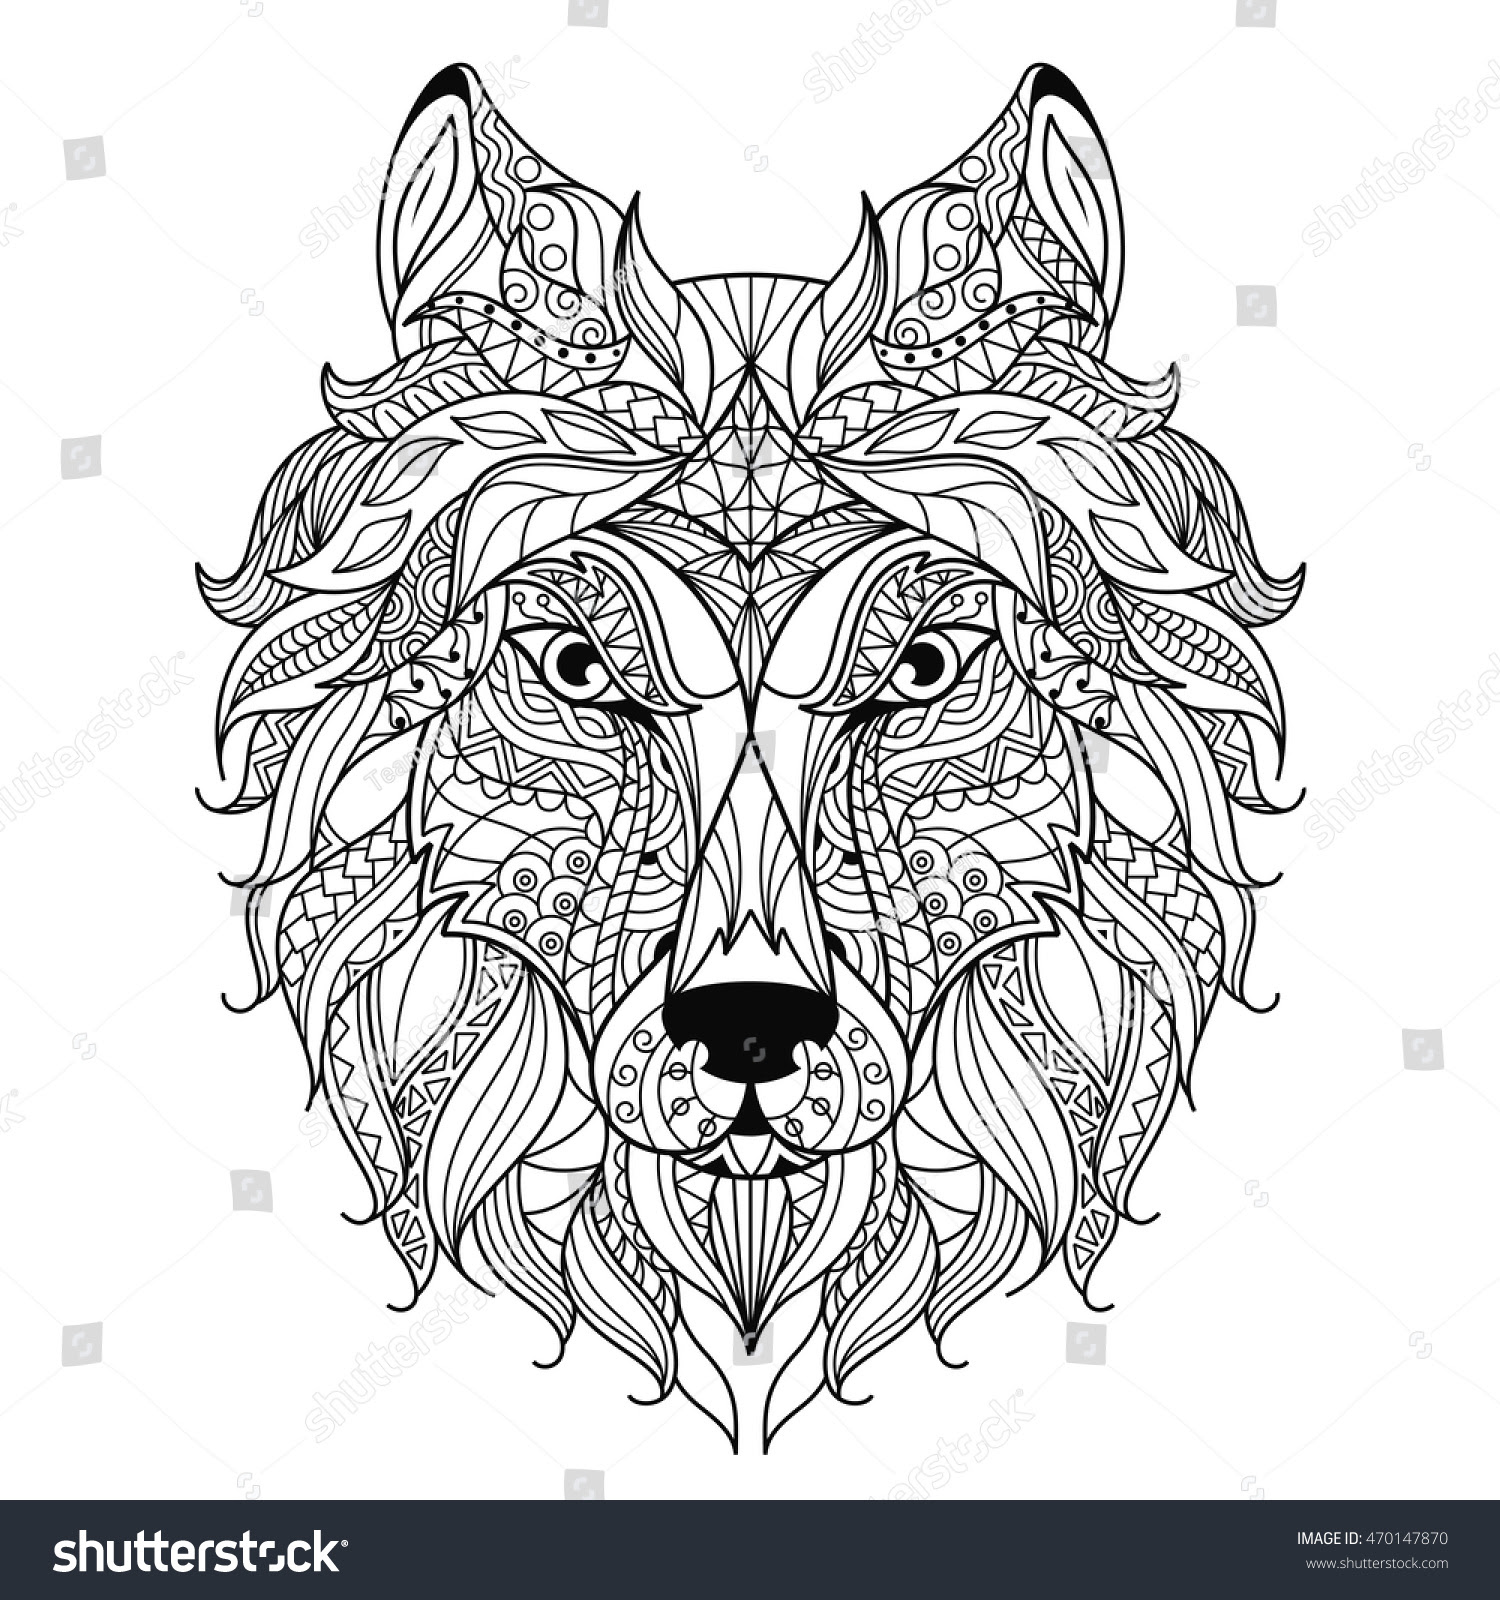 Wolf Head Zentangle Stylized, Coloring Page. Stock Vector ...